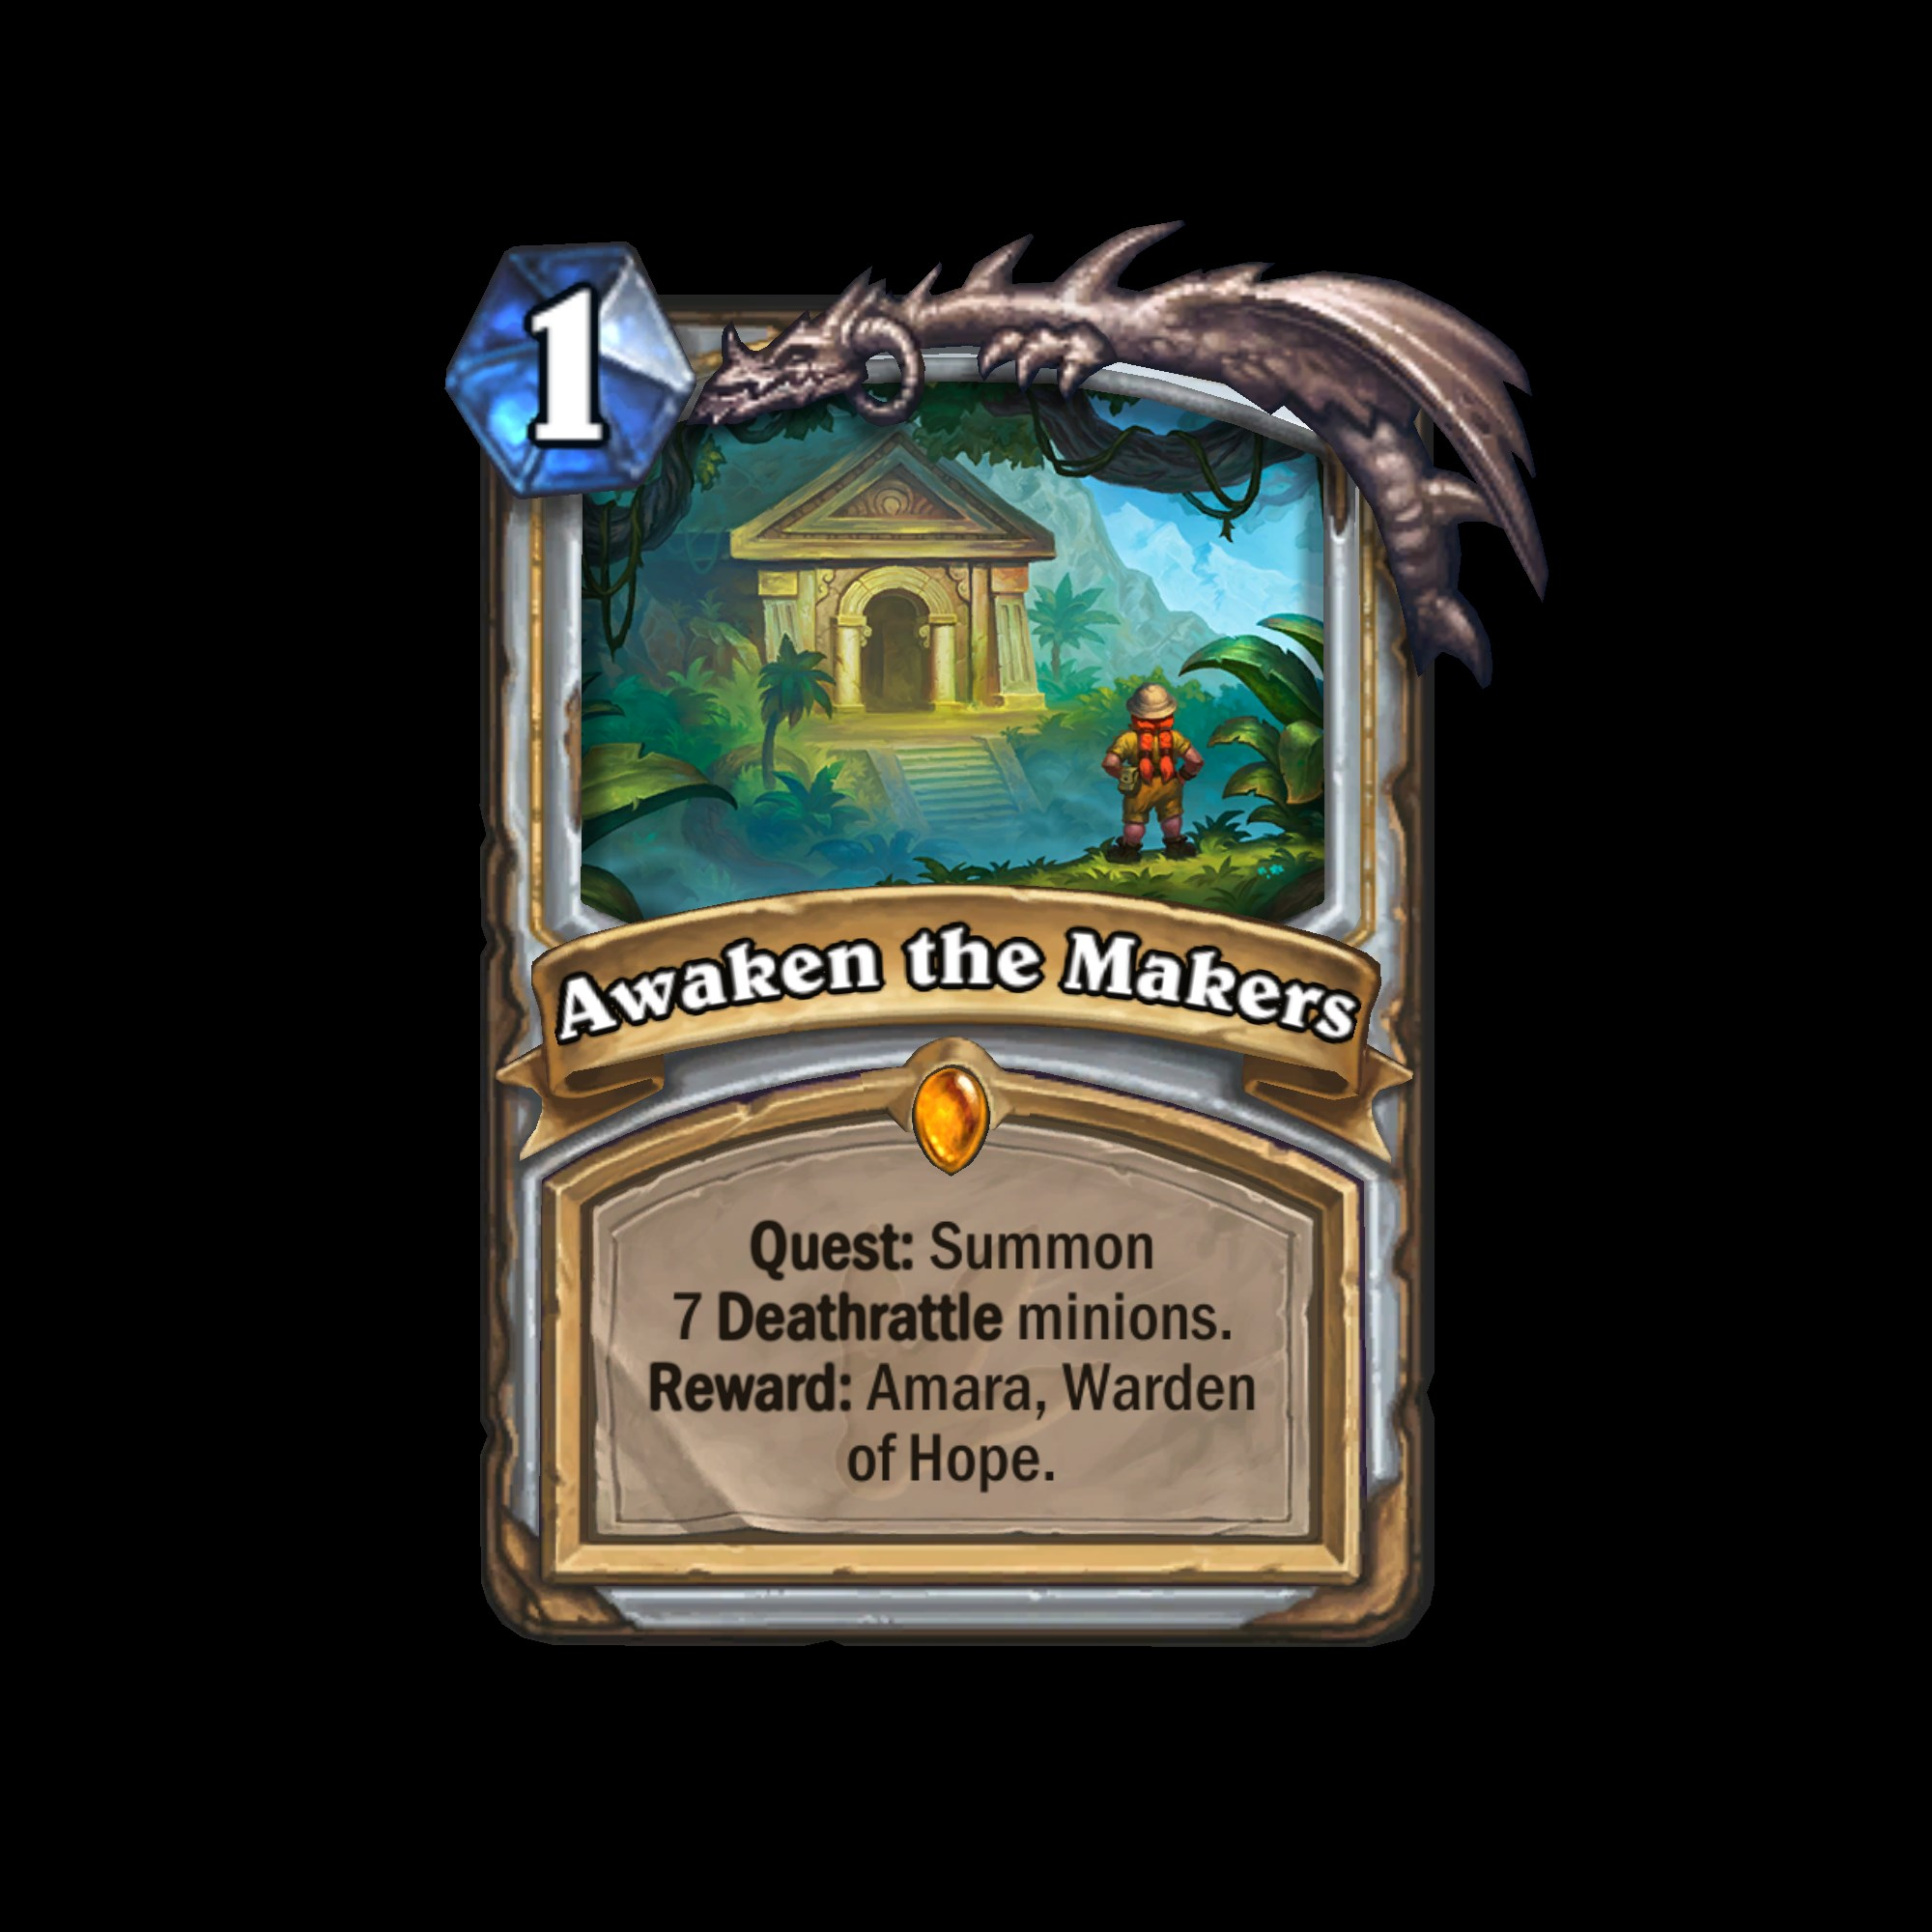 Hearthstone: 'Journey To Un'Goro' Is The Next 'Hearthstone' Expansion